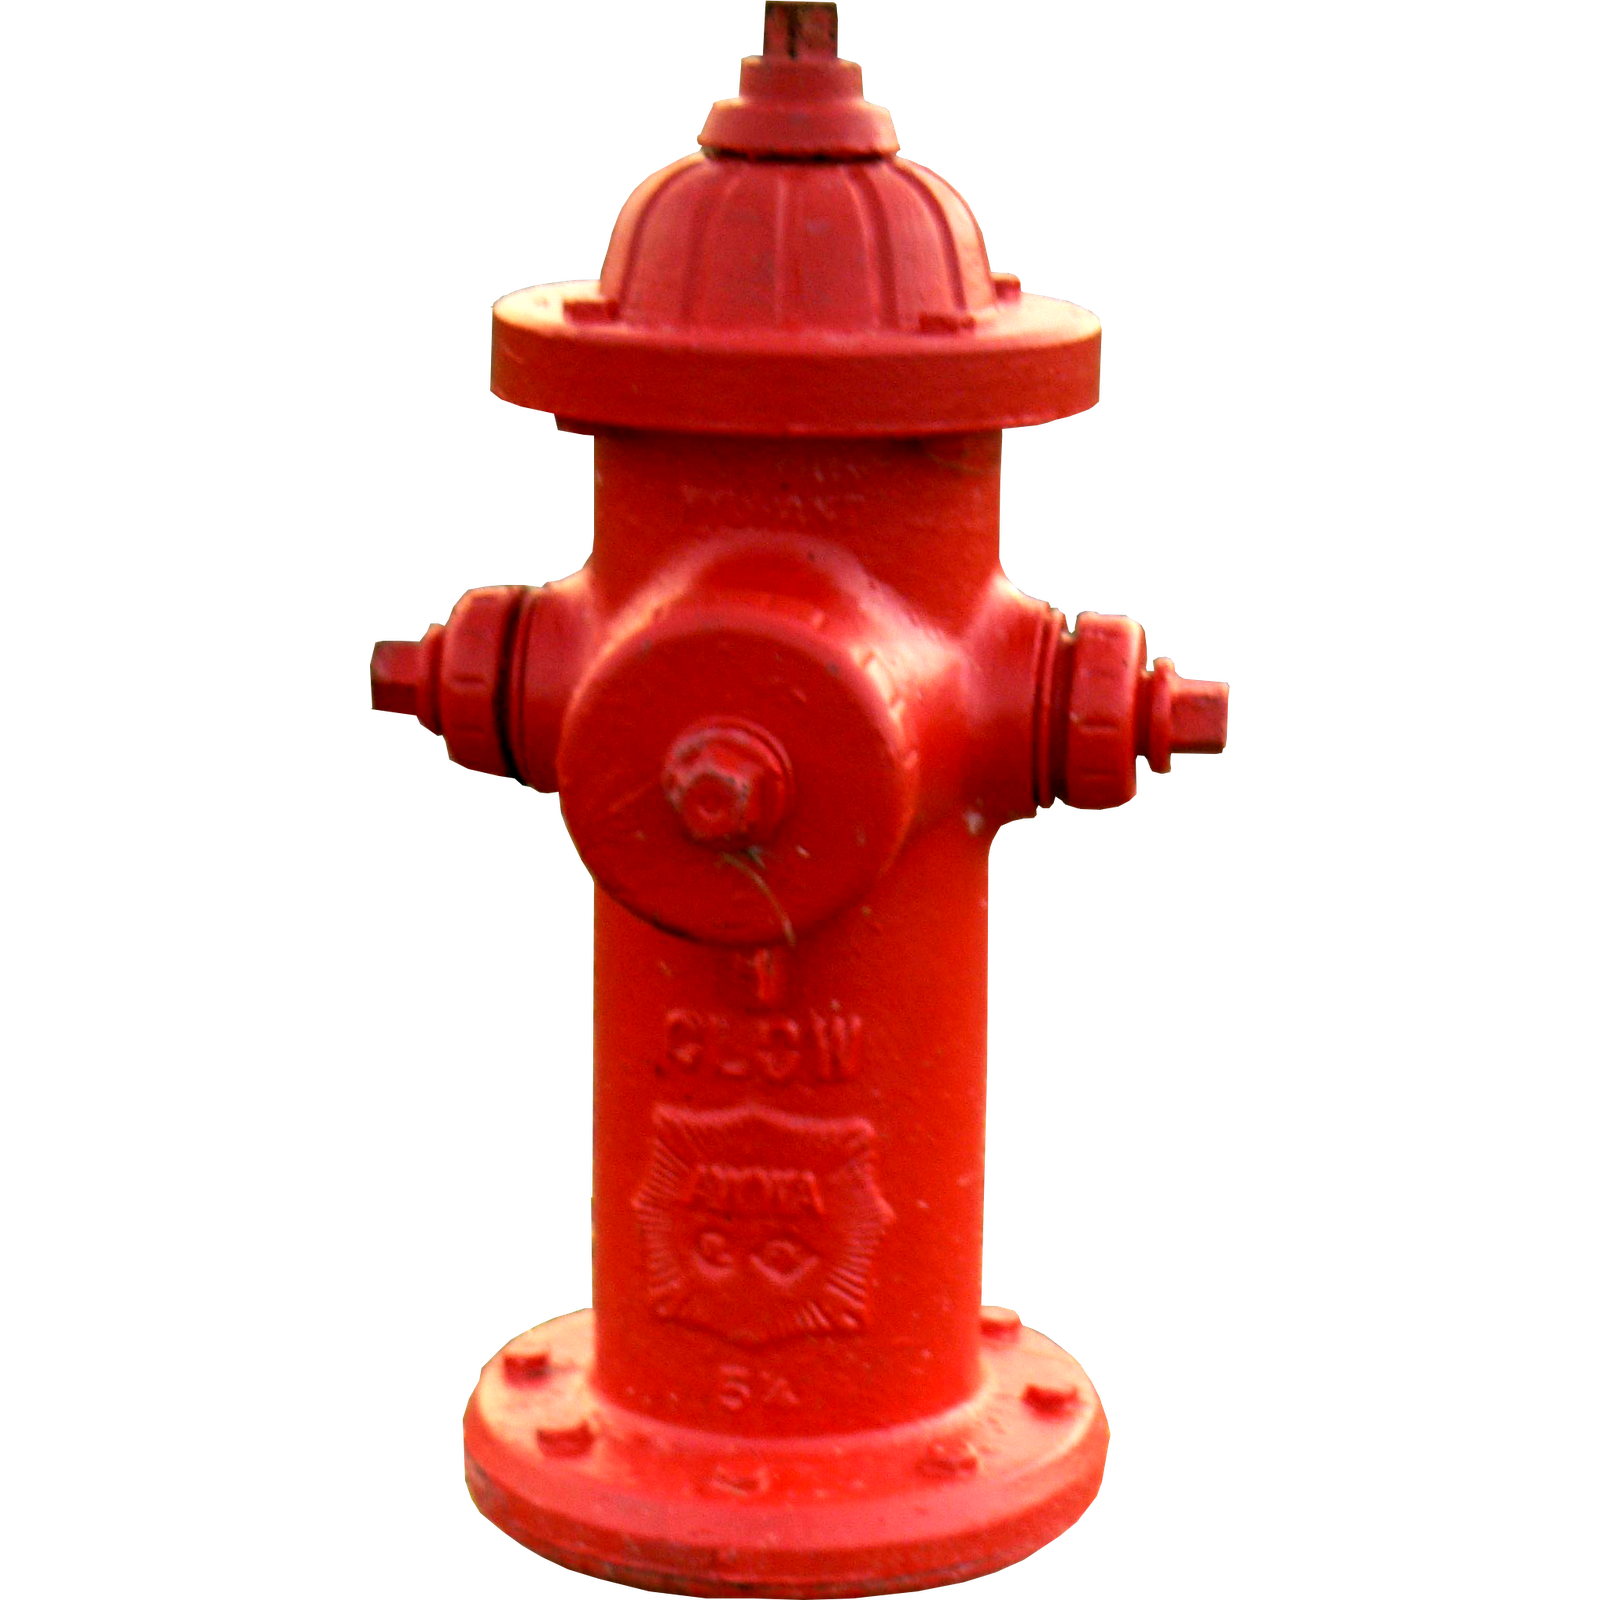 Hydrant Clipart